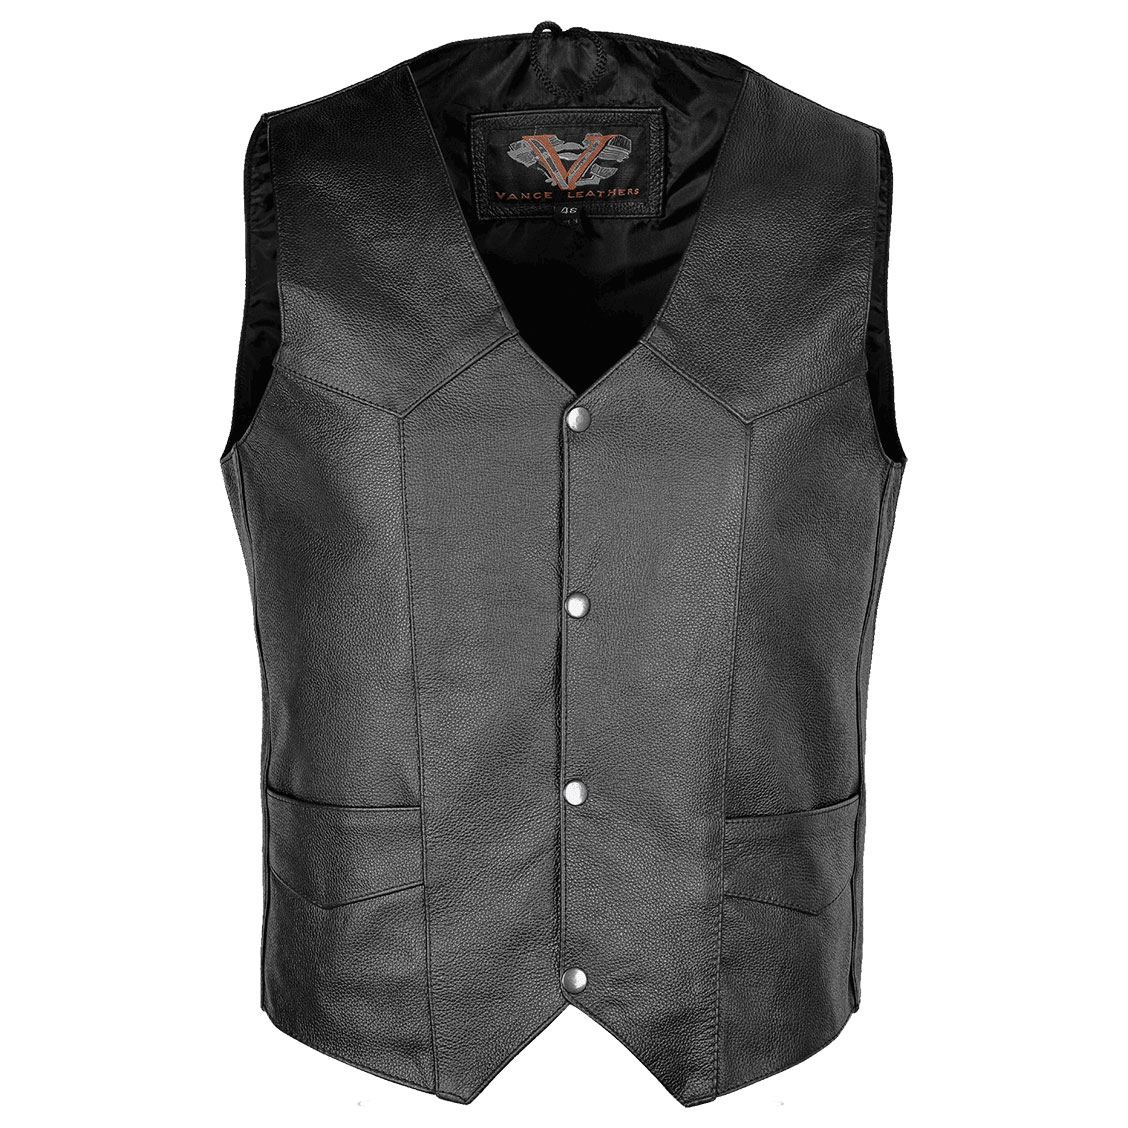 Vance Leathers Men's Plain Side Black Leather Vest